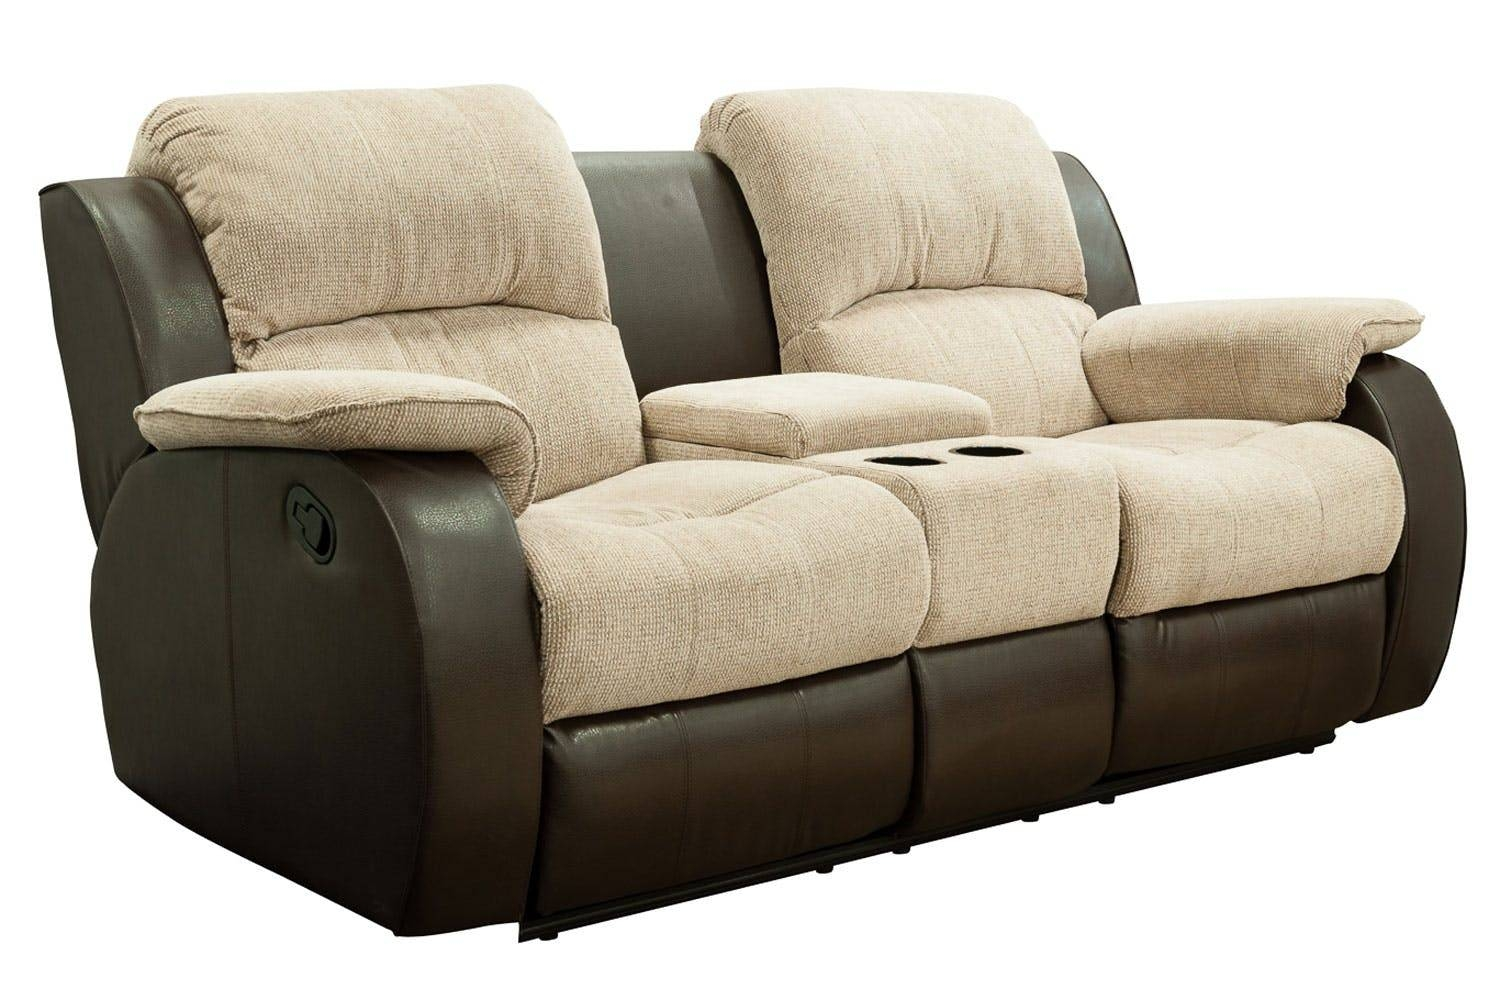 Sofas Center : Reclining Sofa With Console Double Power Recliner Pertaining To Sofas With Consoles (View 18 of 30)